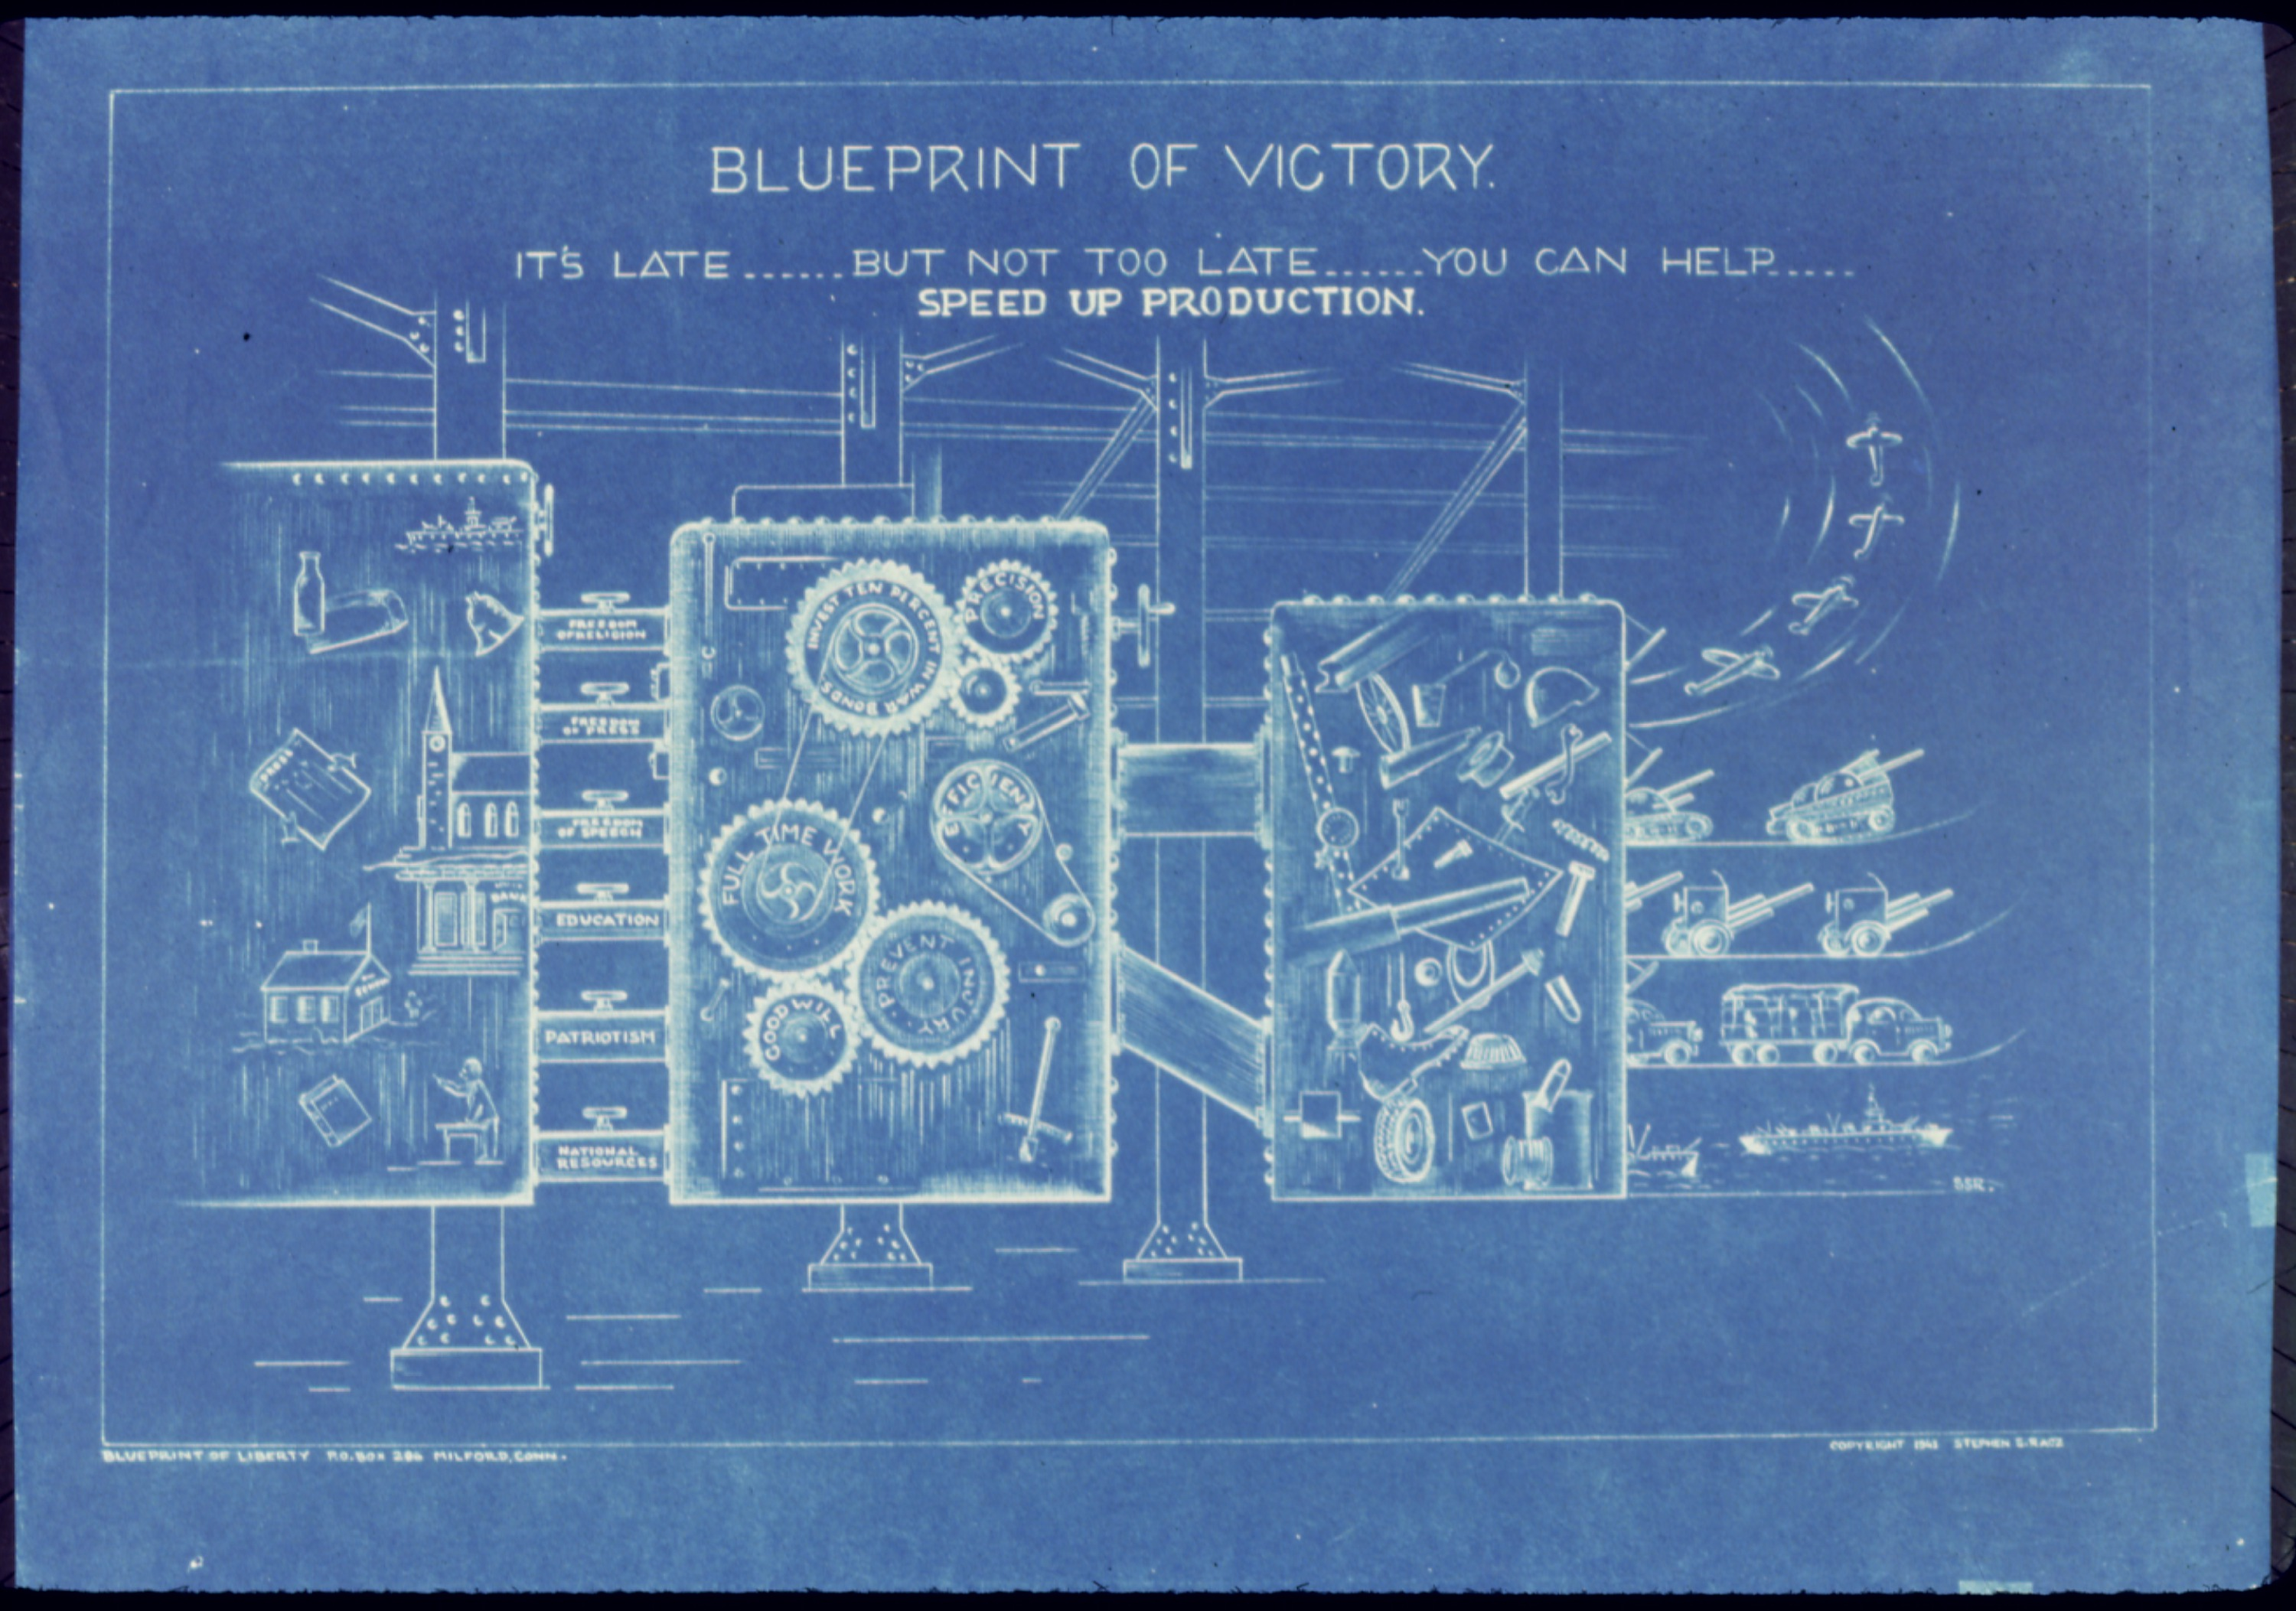 Blueprint of victory, showing a machine